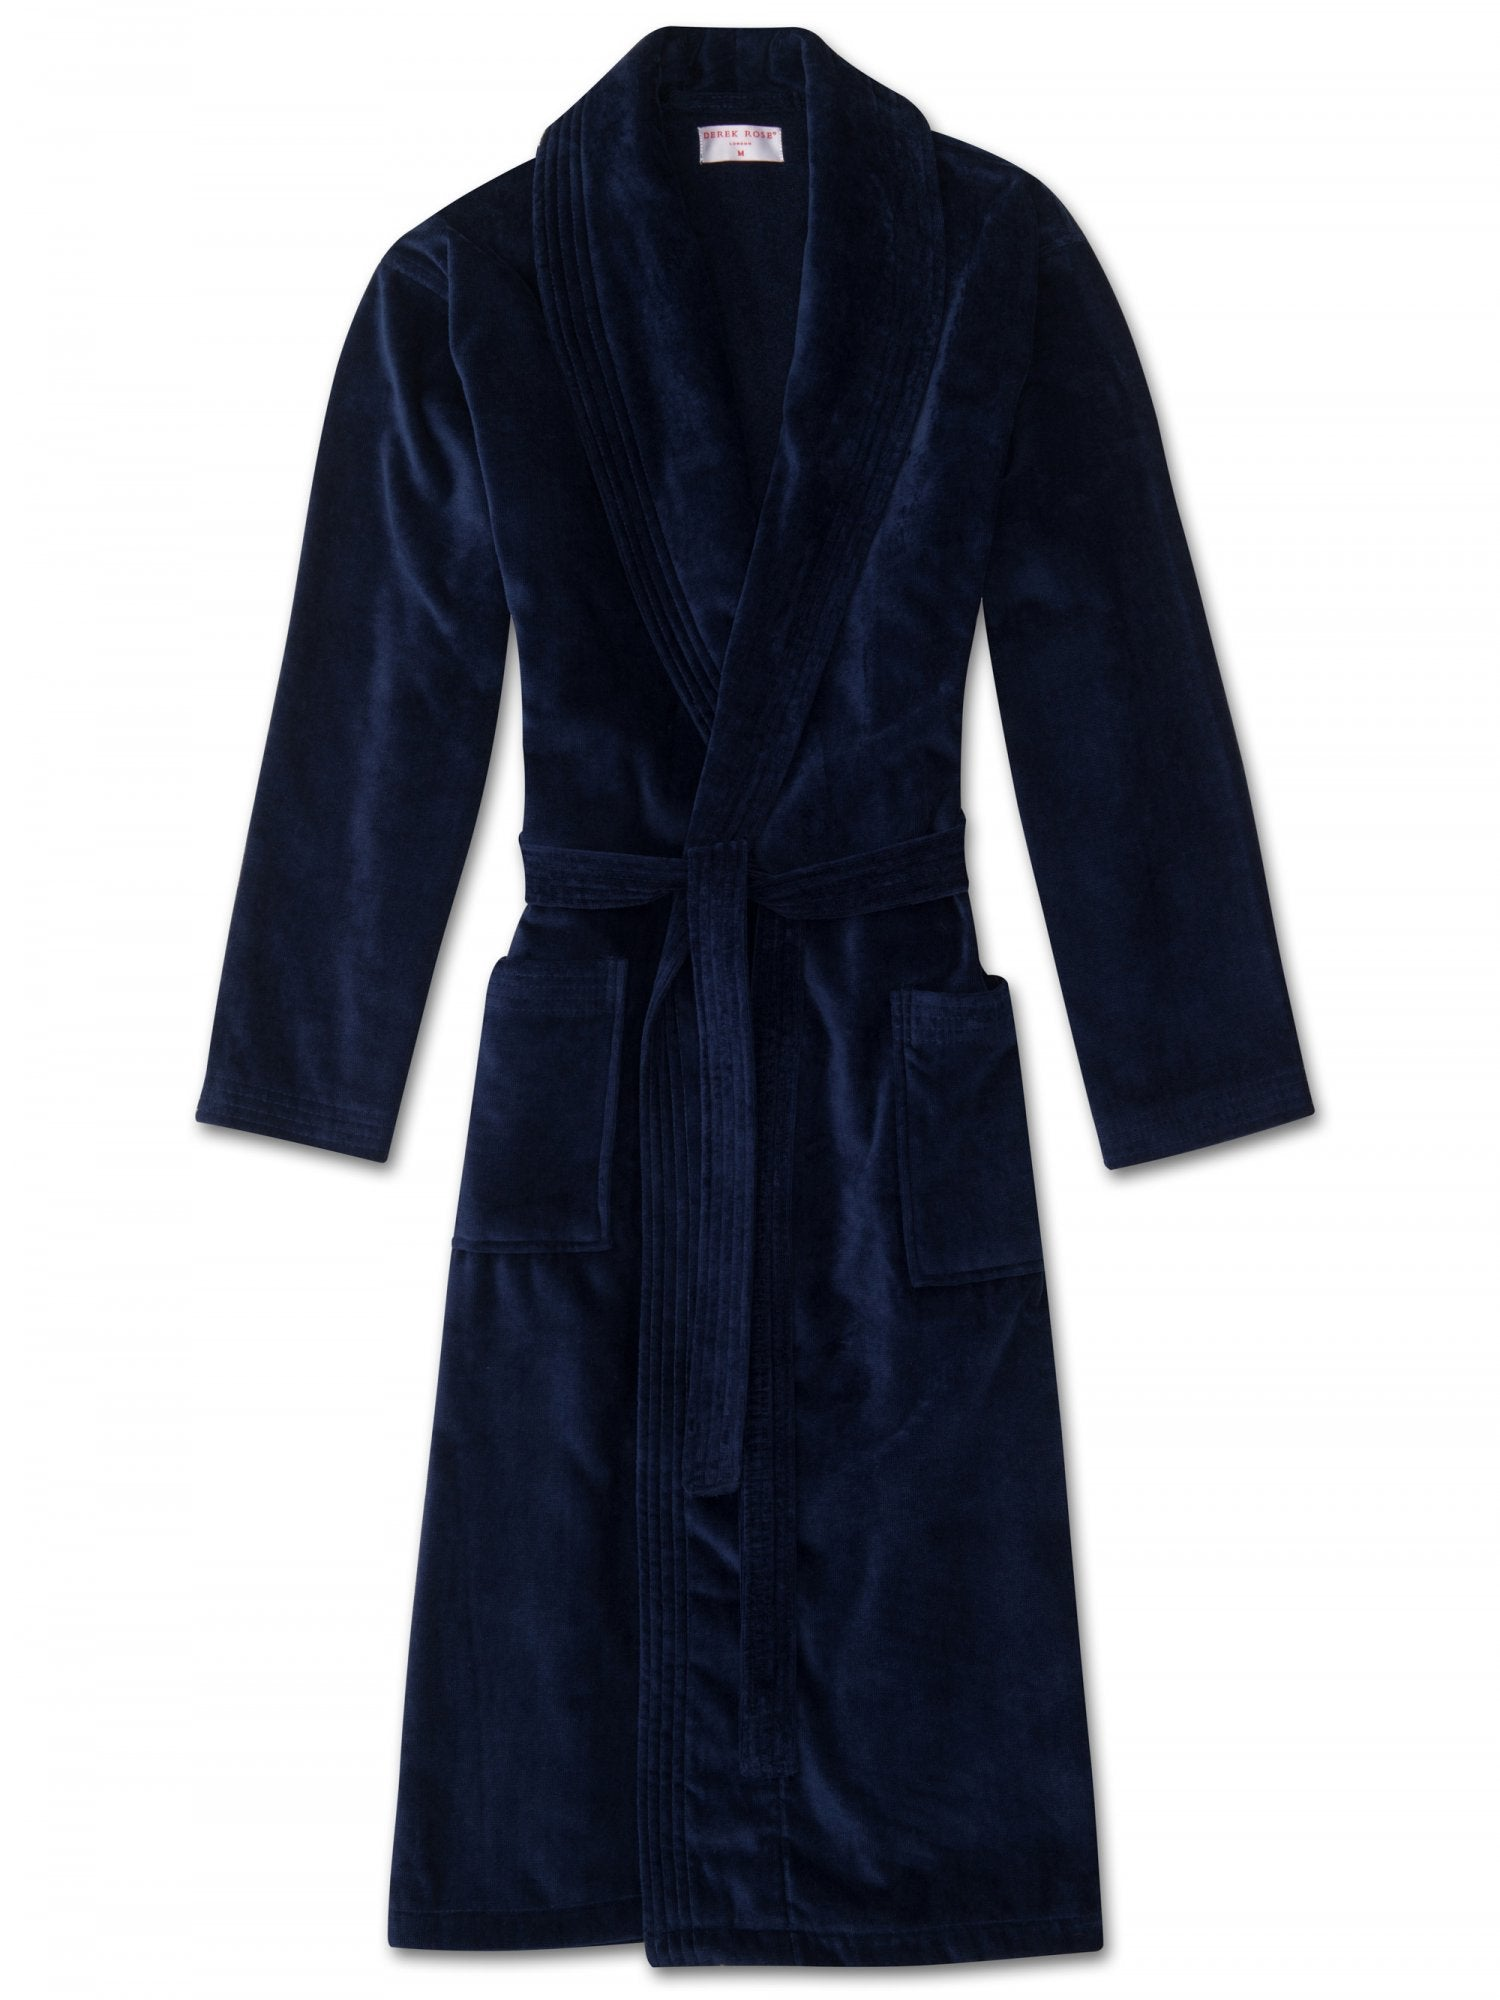 DEREK ROSE TRITON 10 MEN'S ROBE - NAVY